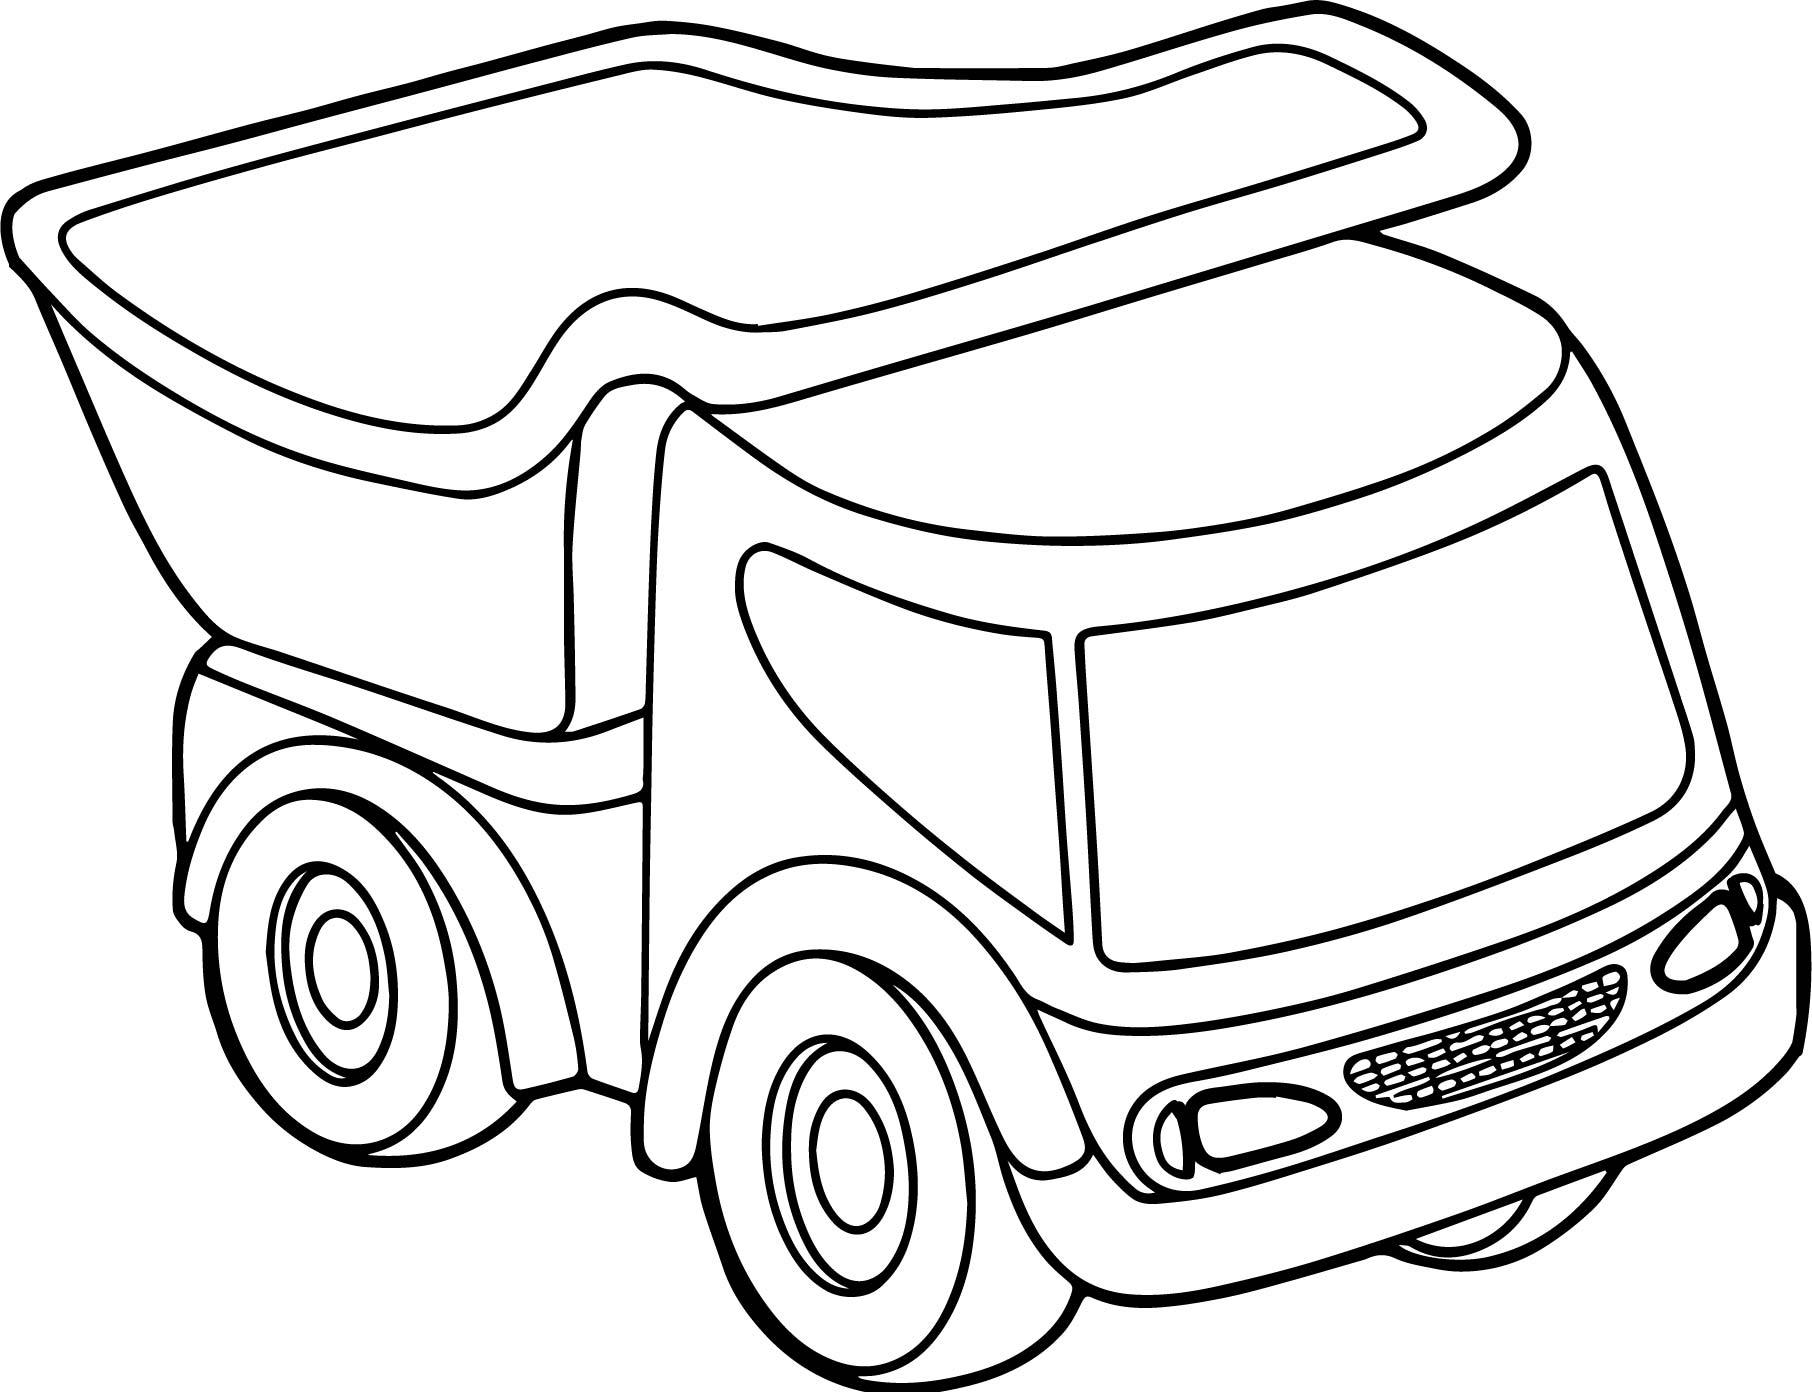 1812x1392 Appealing Toy Car Truck Coloring Page Wecoloringpage Pics